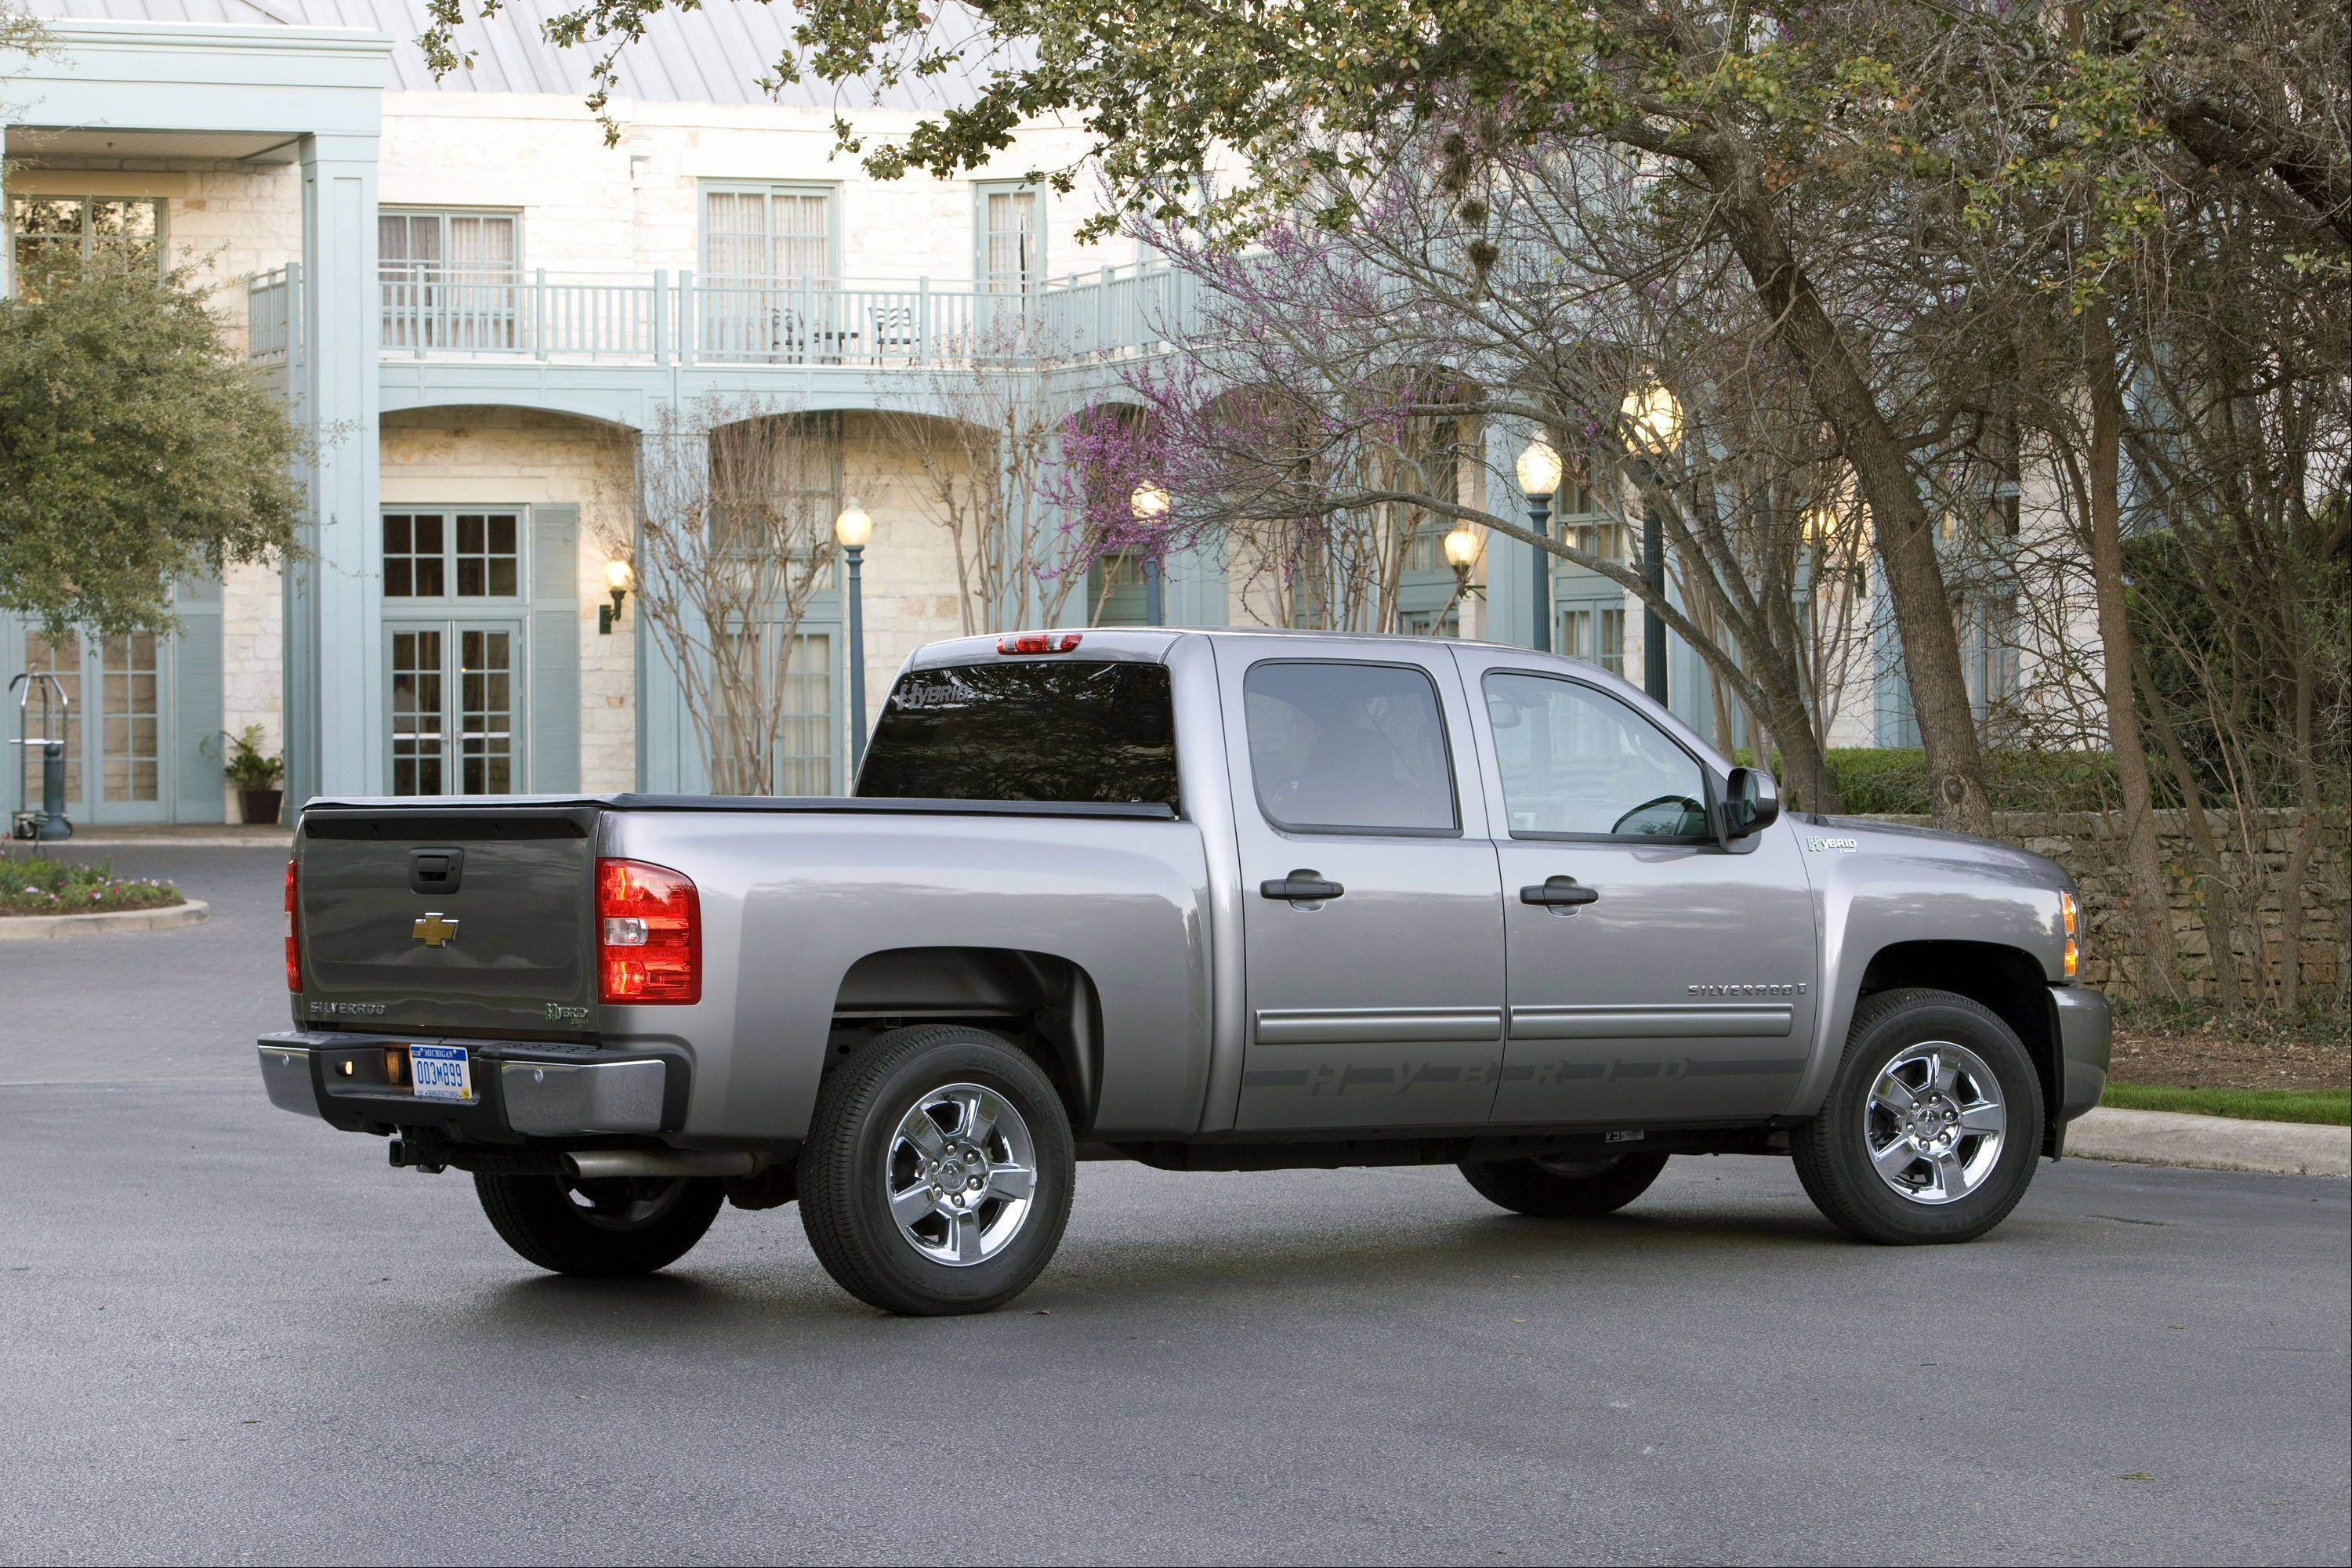 General Motors plans to cut back on pickup truck production in September. Spokesman Tom Wickham said that GM cancelled five scheduled overtime shifts on Saturdays in September and October.